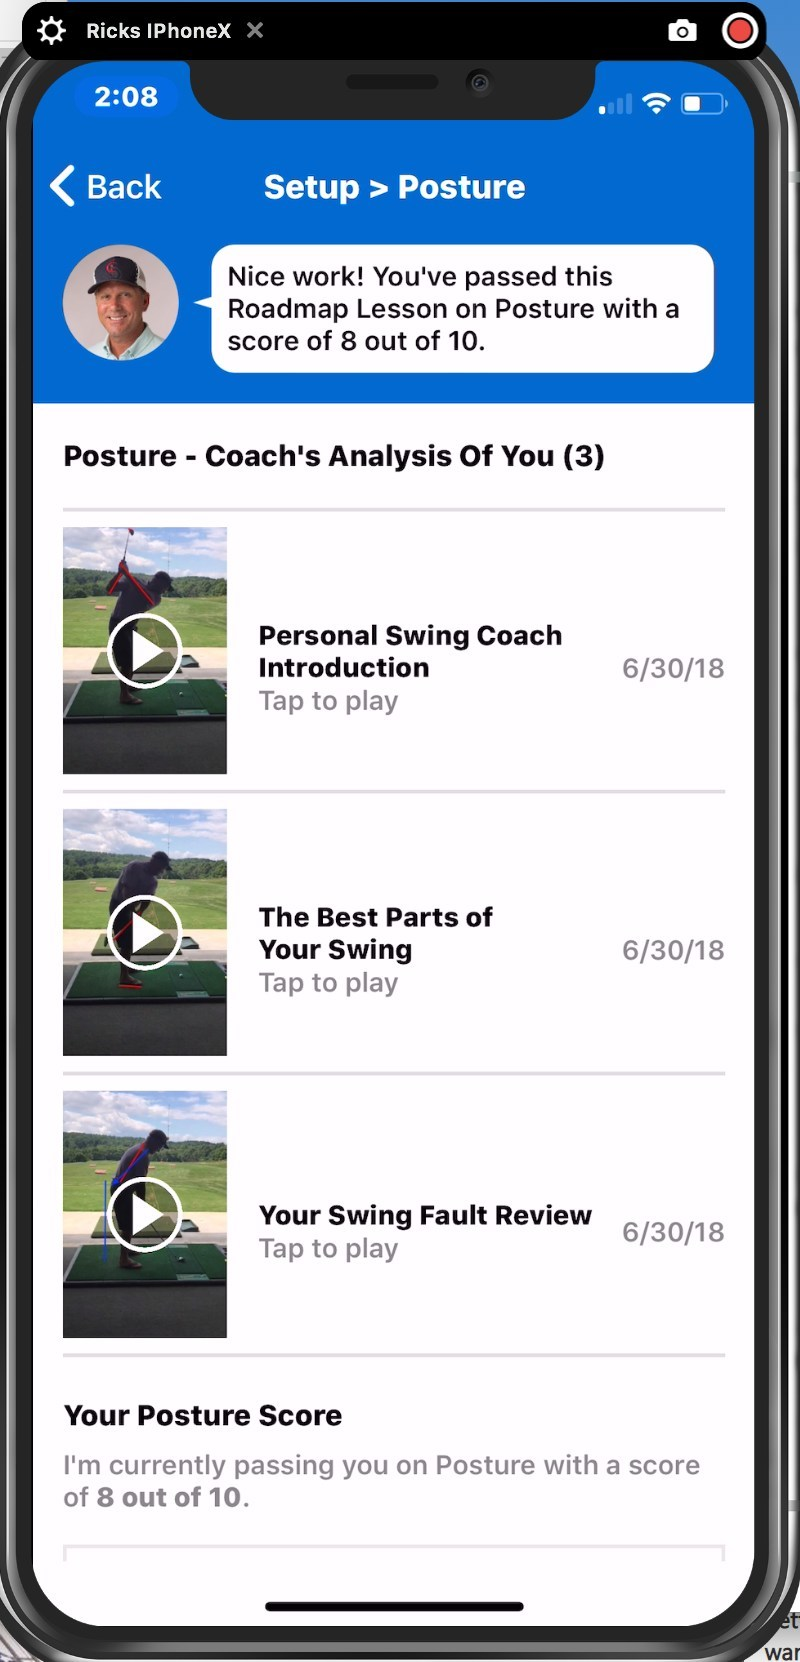 GOLF.com's innovative new Play With The Pros instruction platform enables golfers to immediately connect with a world-class golf teacher to personally analyze a student's golf swing and provide two-way golf instruction anytime, anywhere. (PRNewsfoto/GOLF.com)